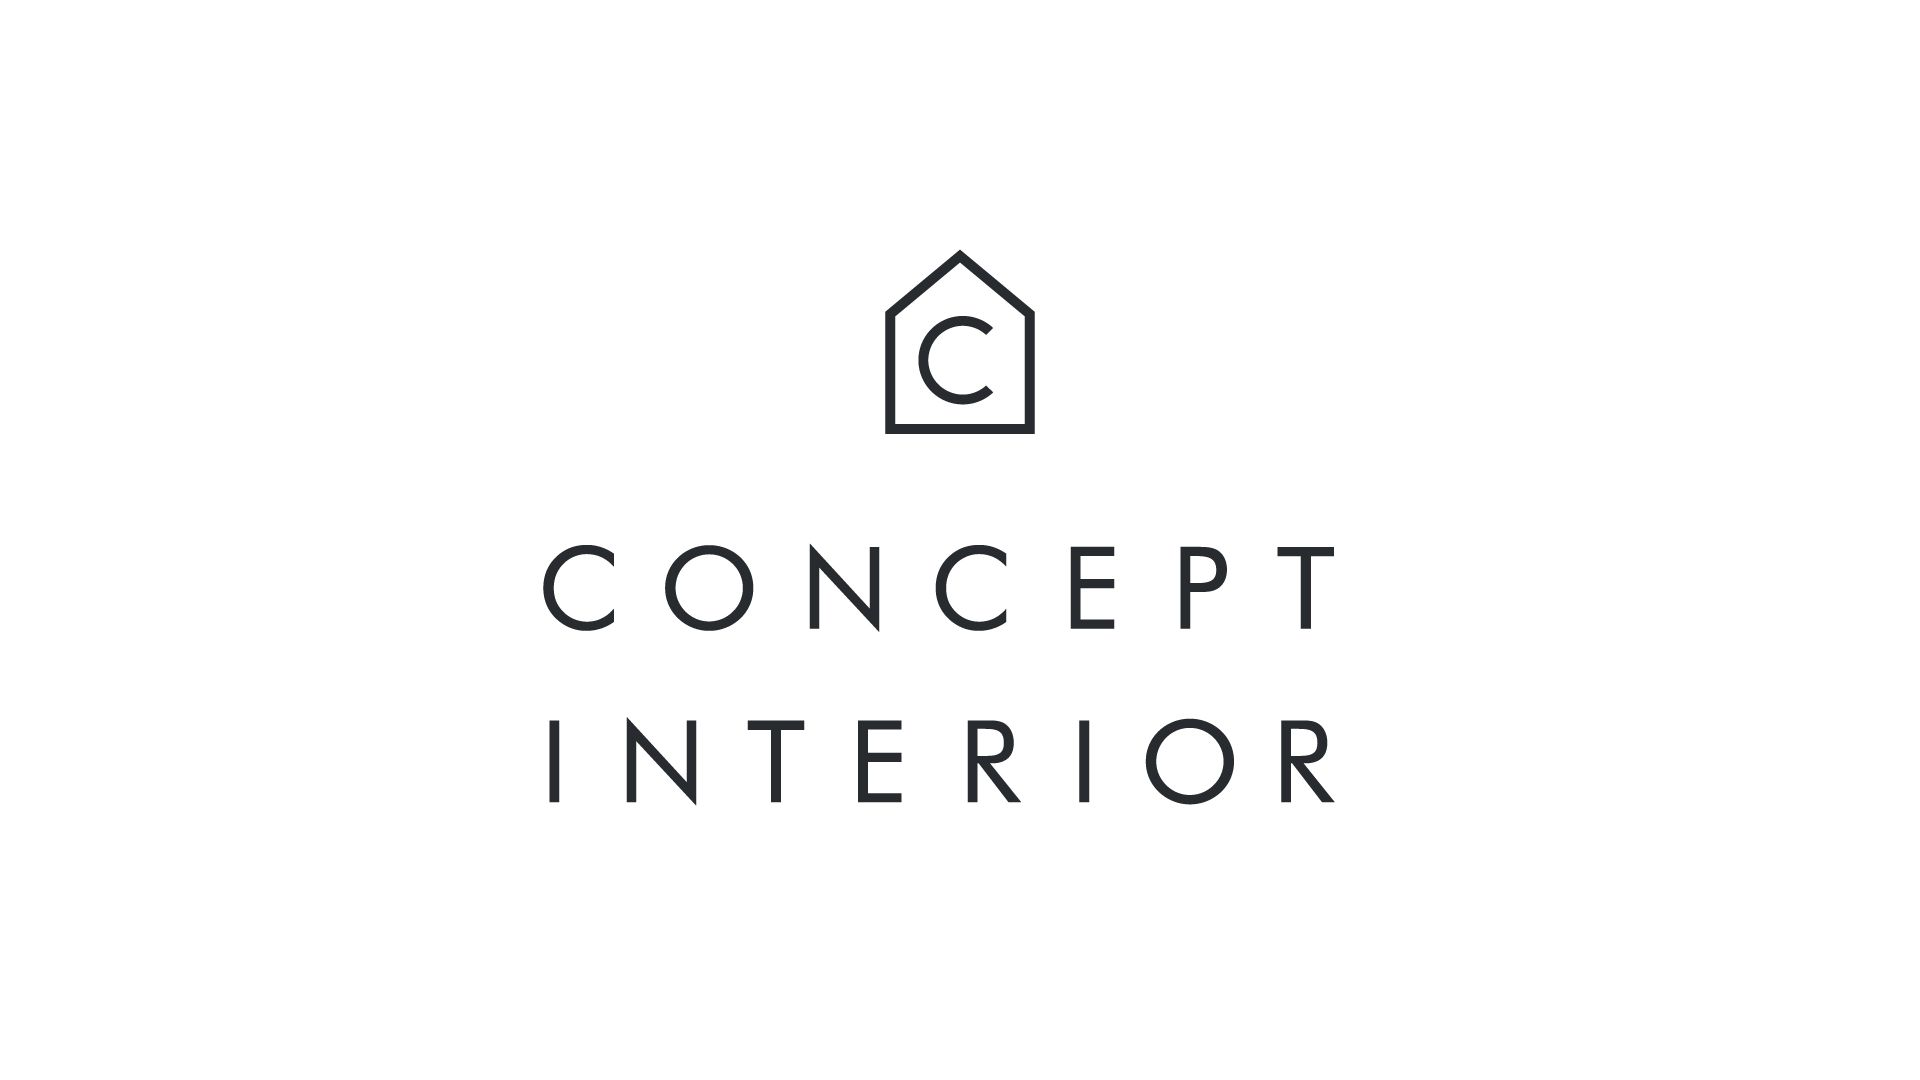 interior design logos google search interior design pinterest rh pinterest com interior design logistic interior design logistic